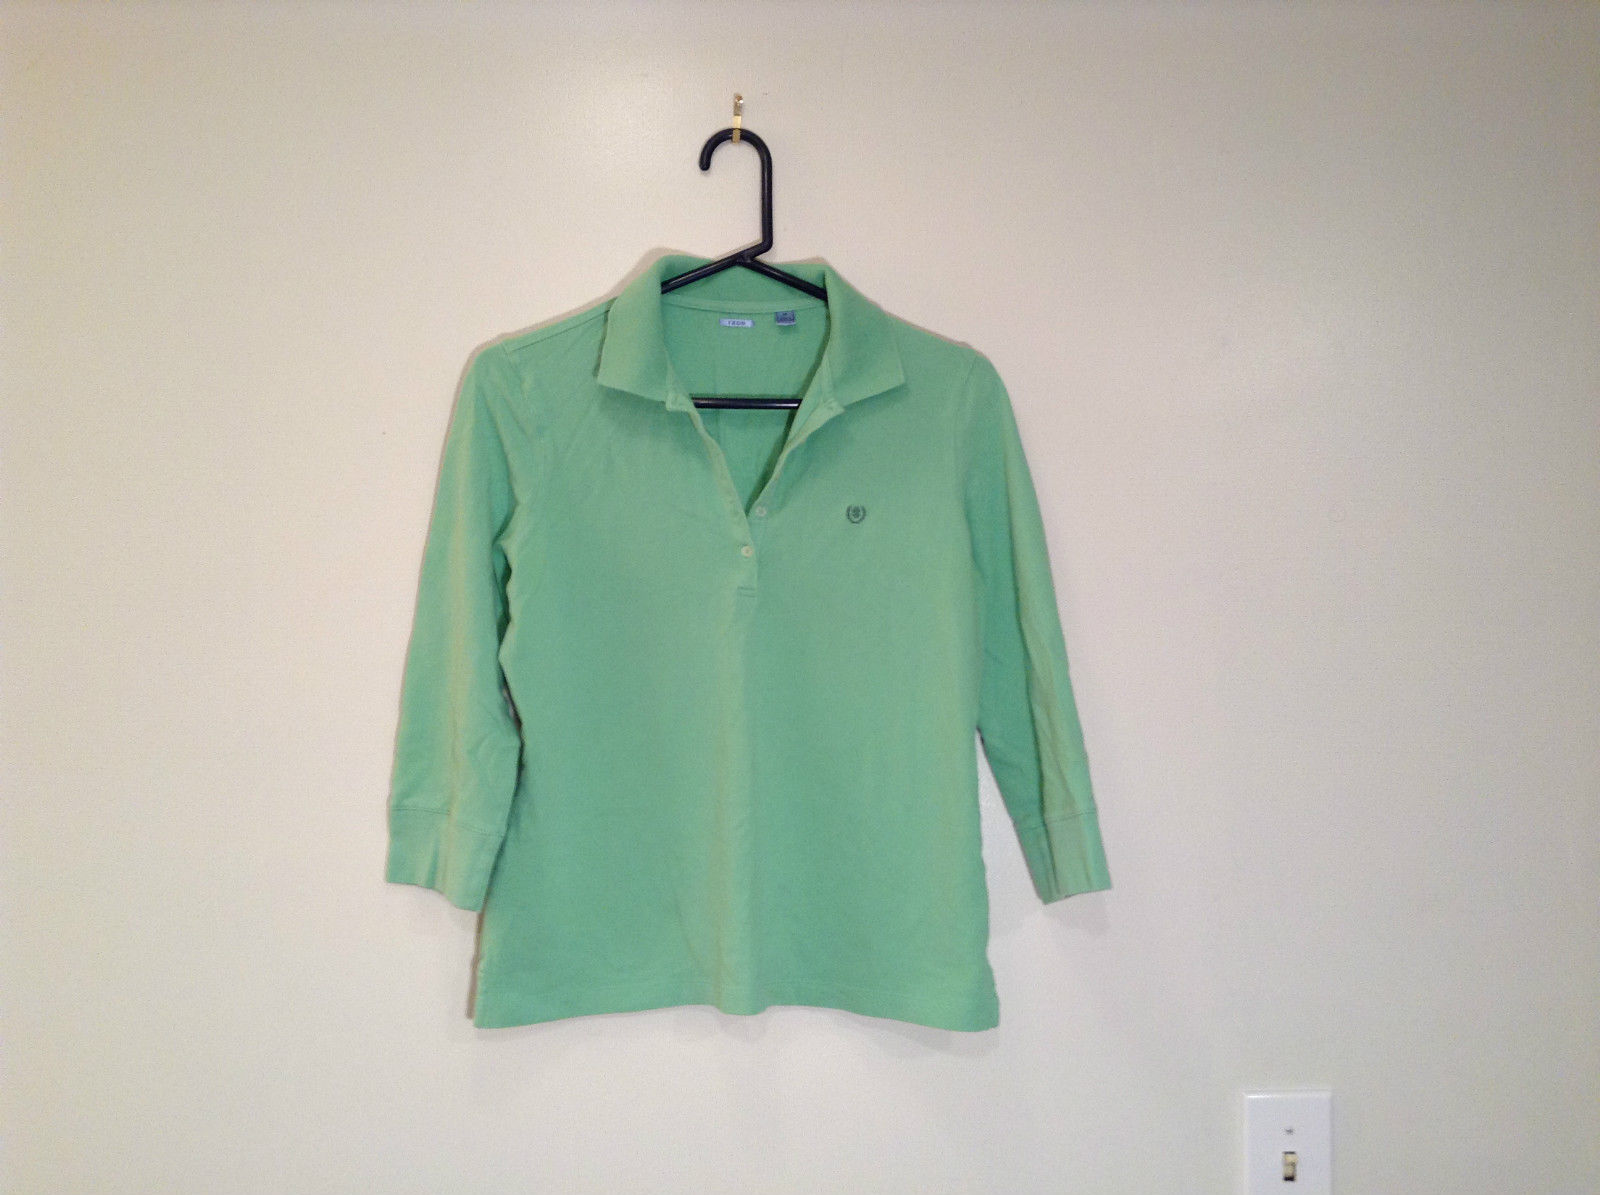 Green IZOD Size M Three Quarter Length Sleeves Collared Polo Top